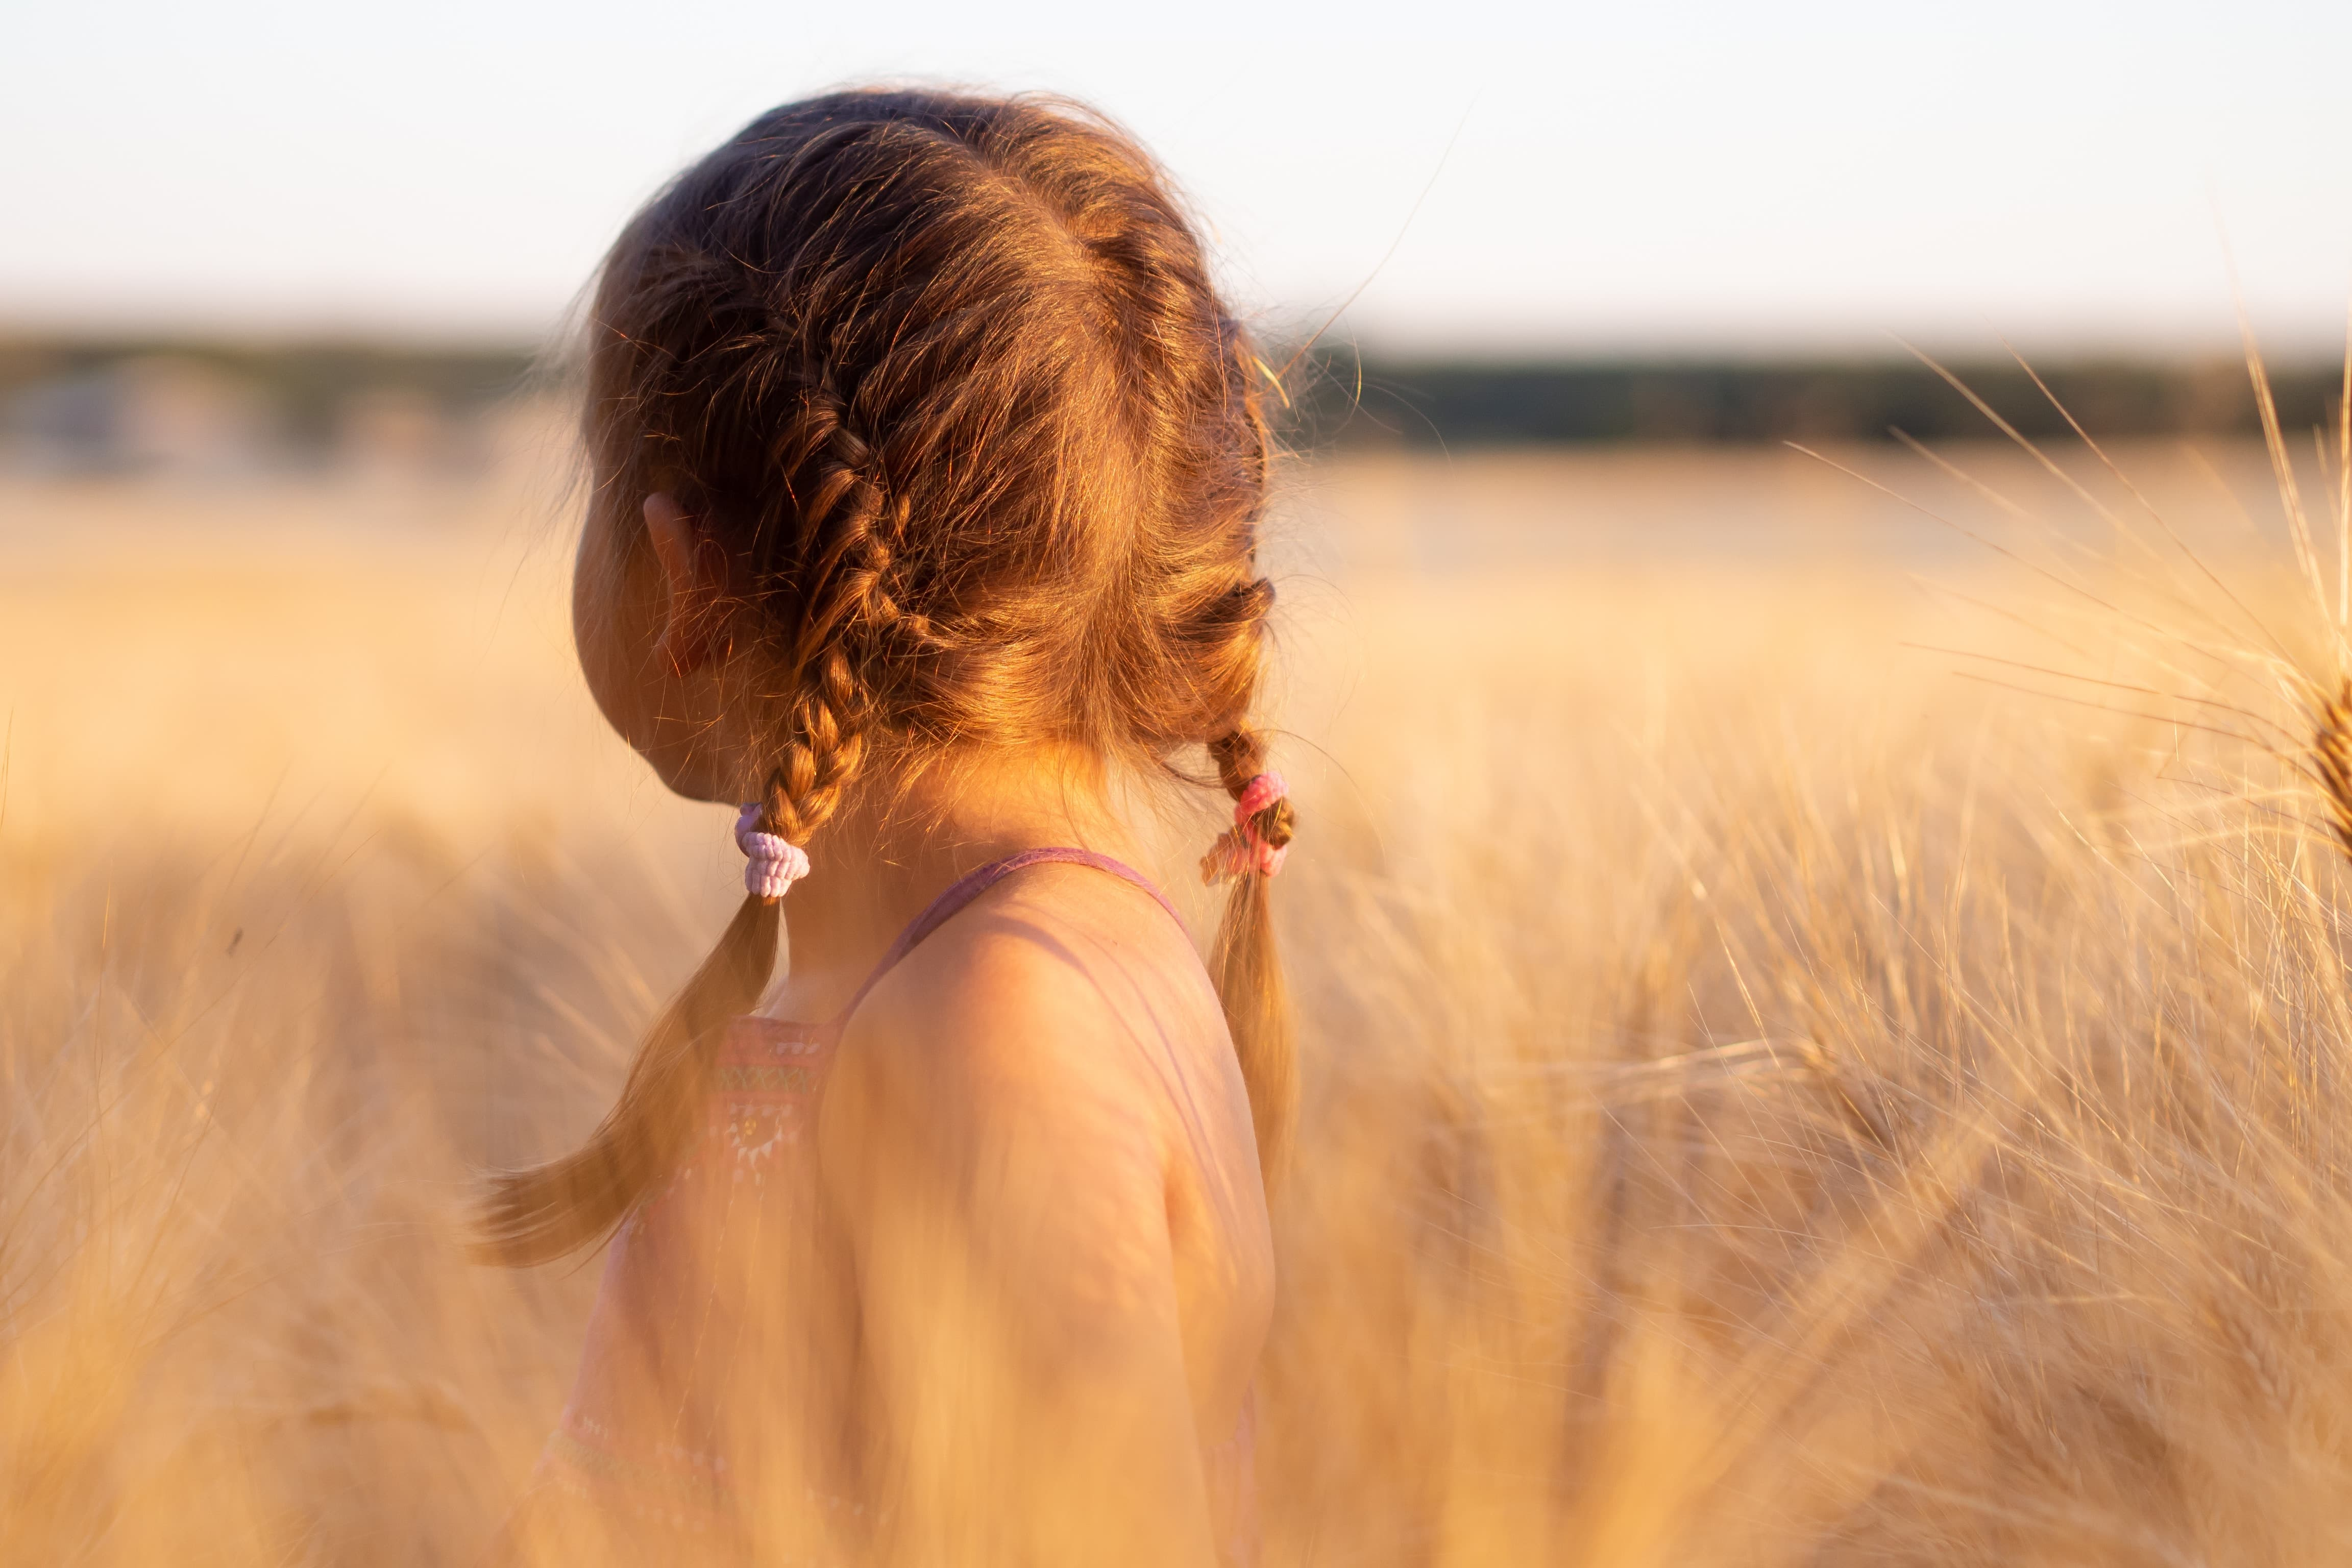 A girl in a field looking for something